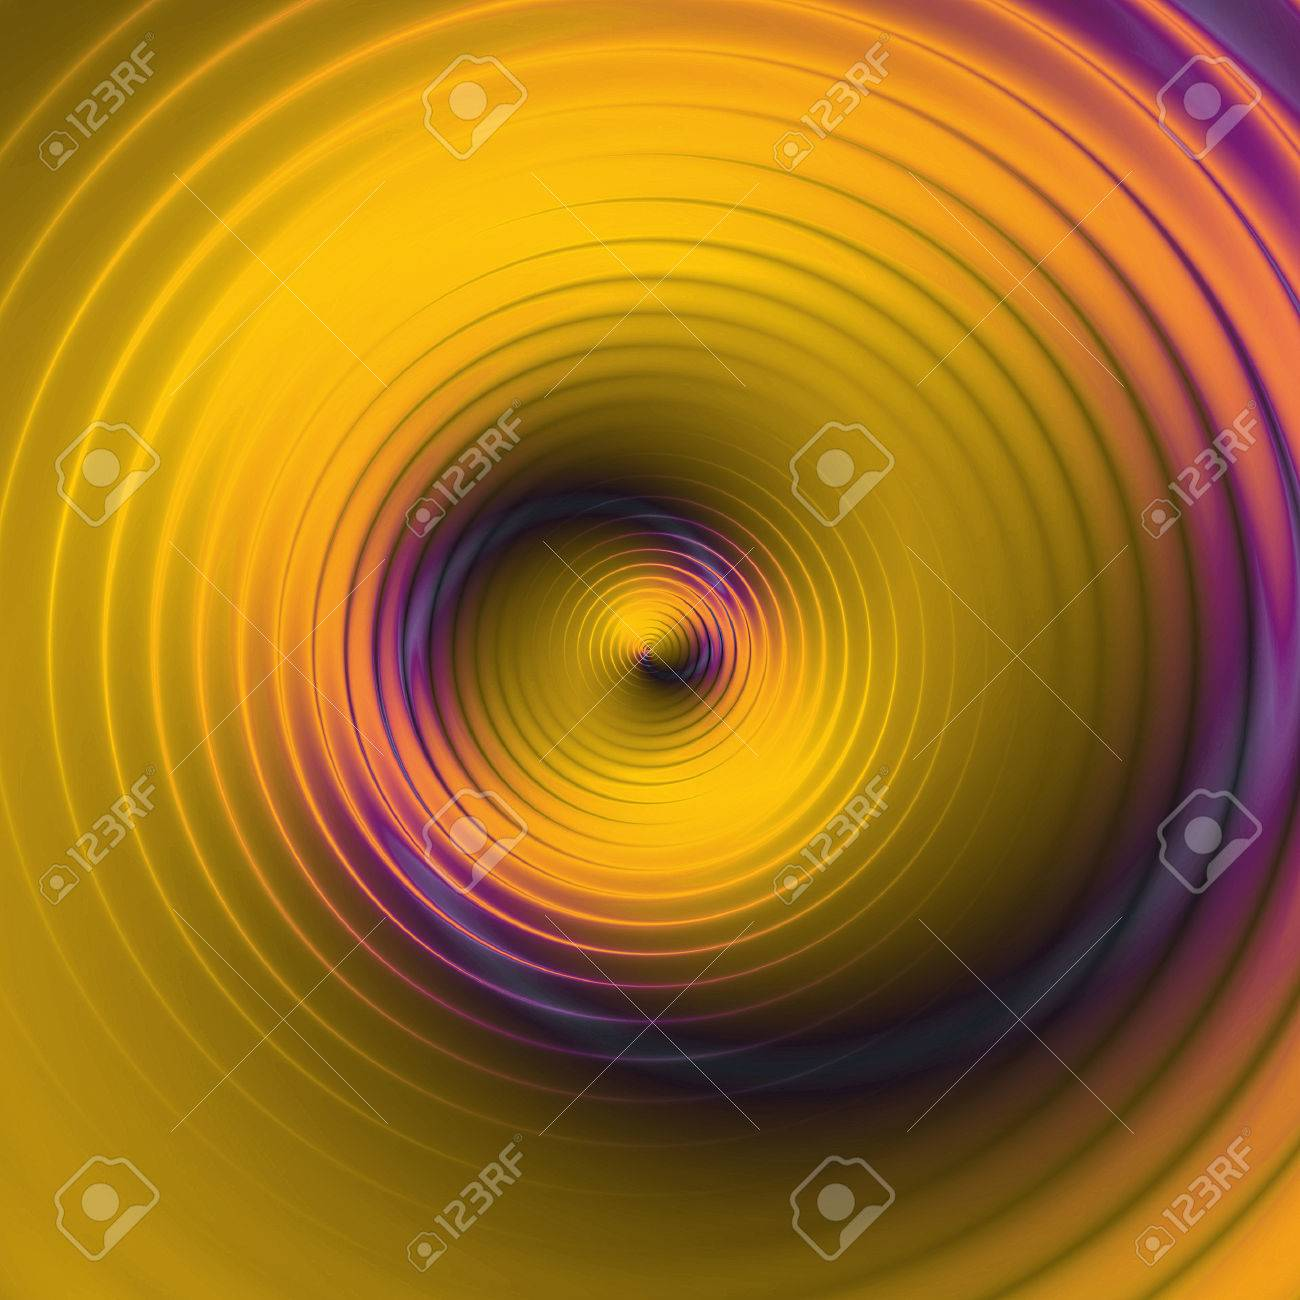 Abstract Background Of Circular Concentric Spirals Creating An Illusion Of  Movement Stock Photo   51655427